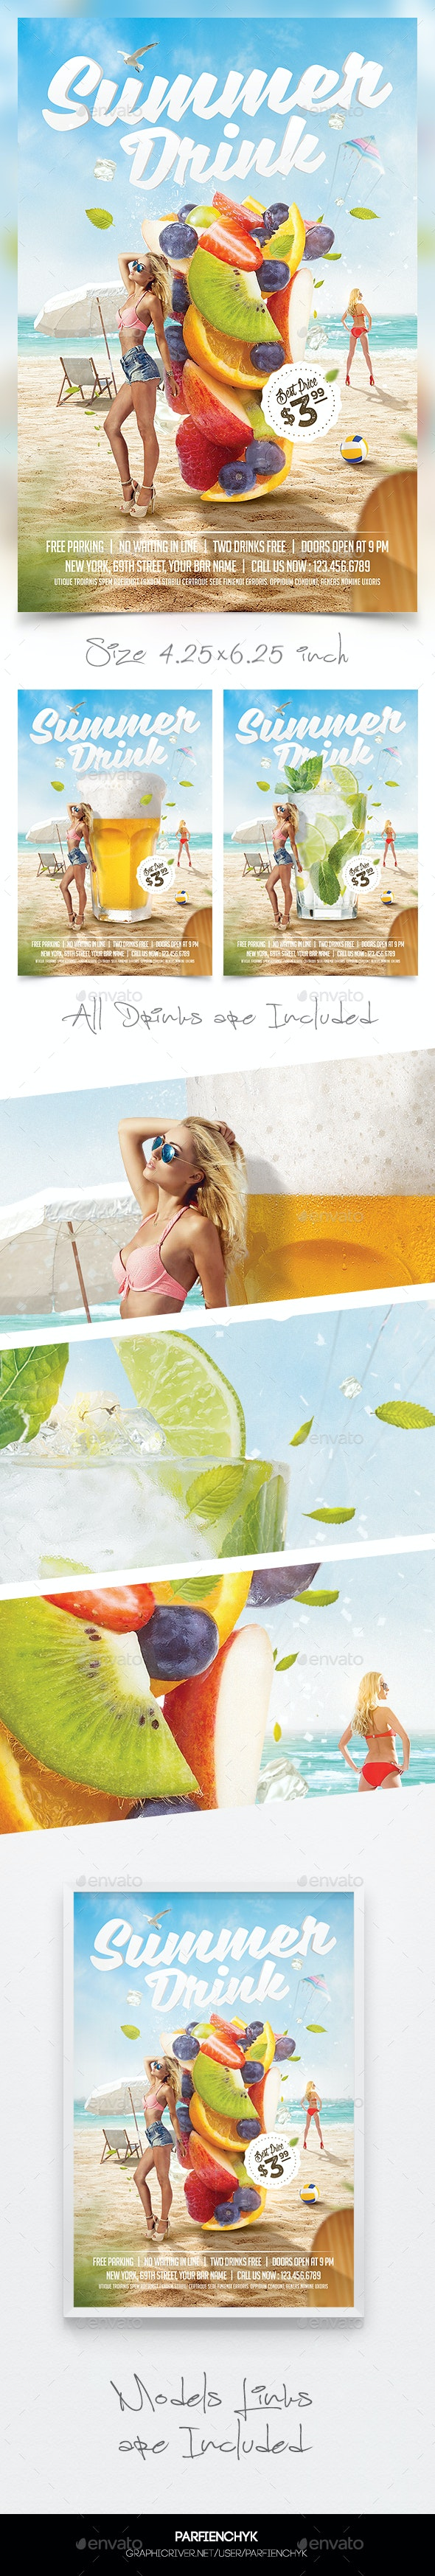 3in1 Summer Drinks Flyer Template - Clubs & Parties Events